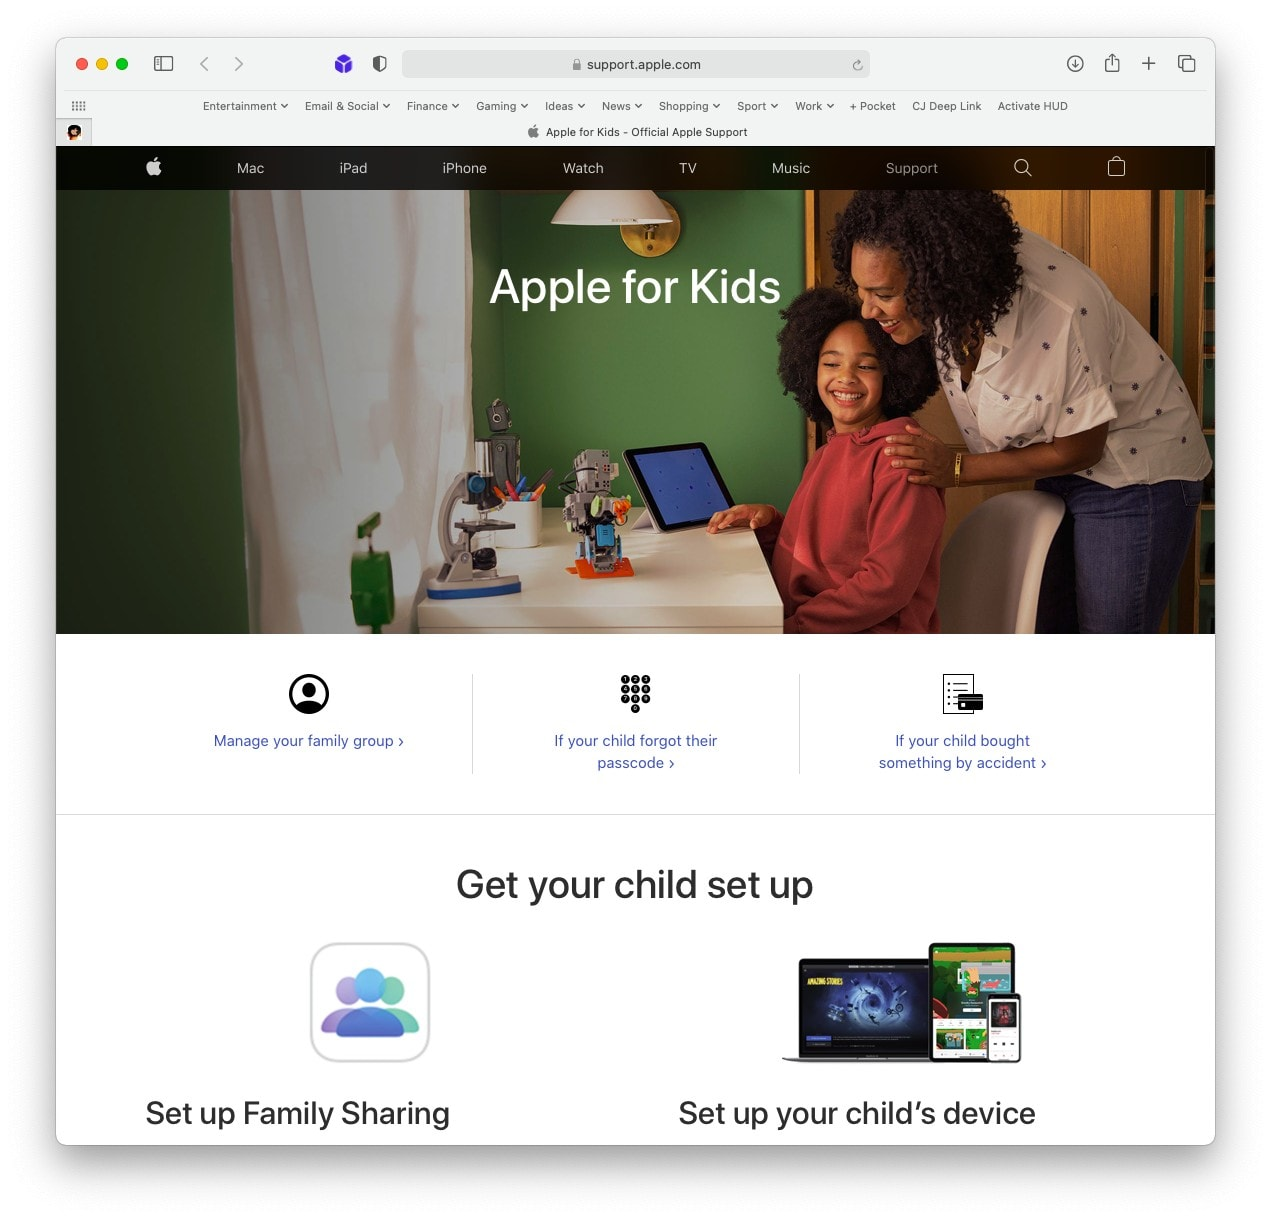 Apple for Kids online portal